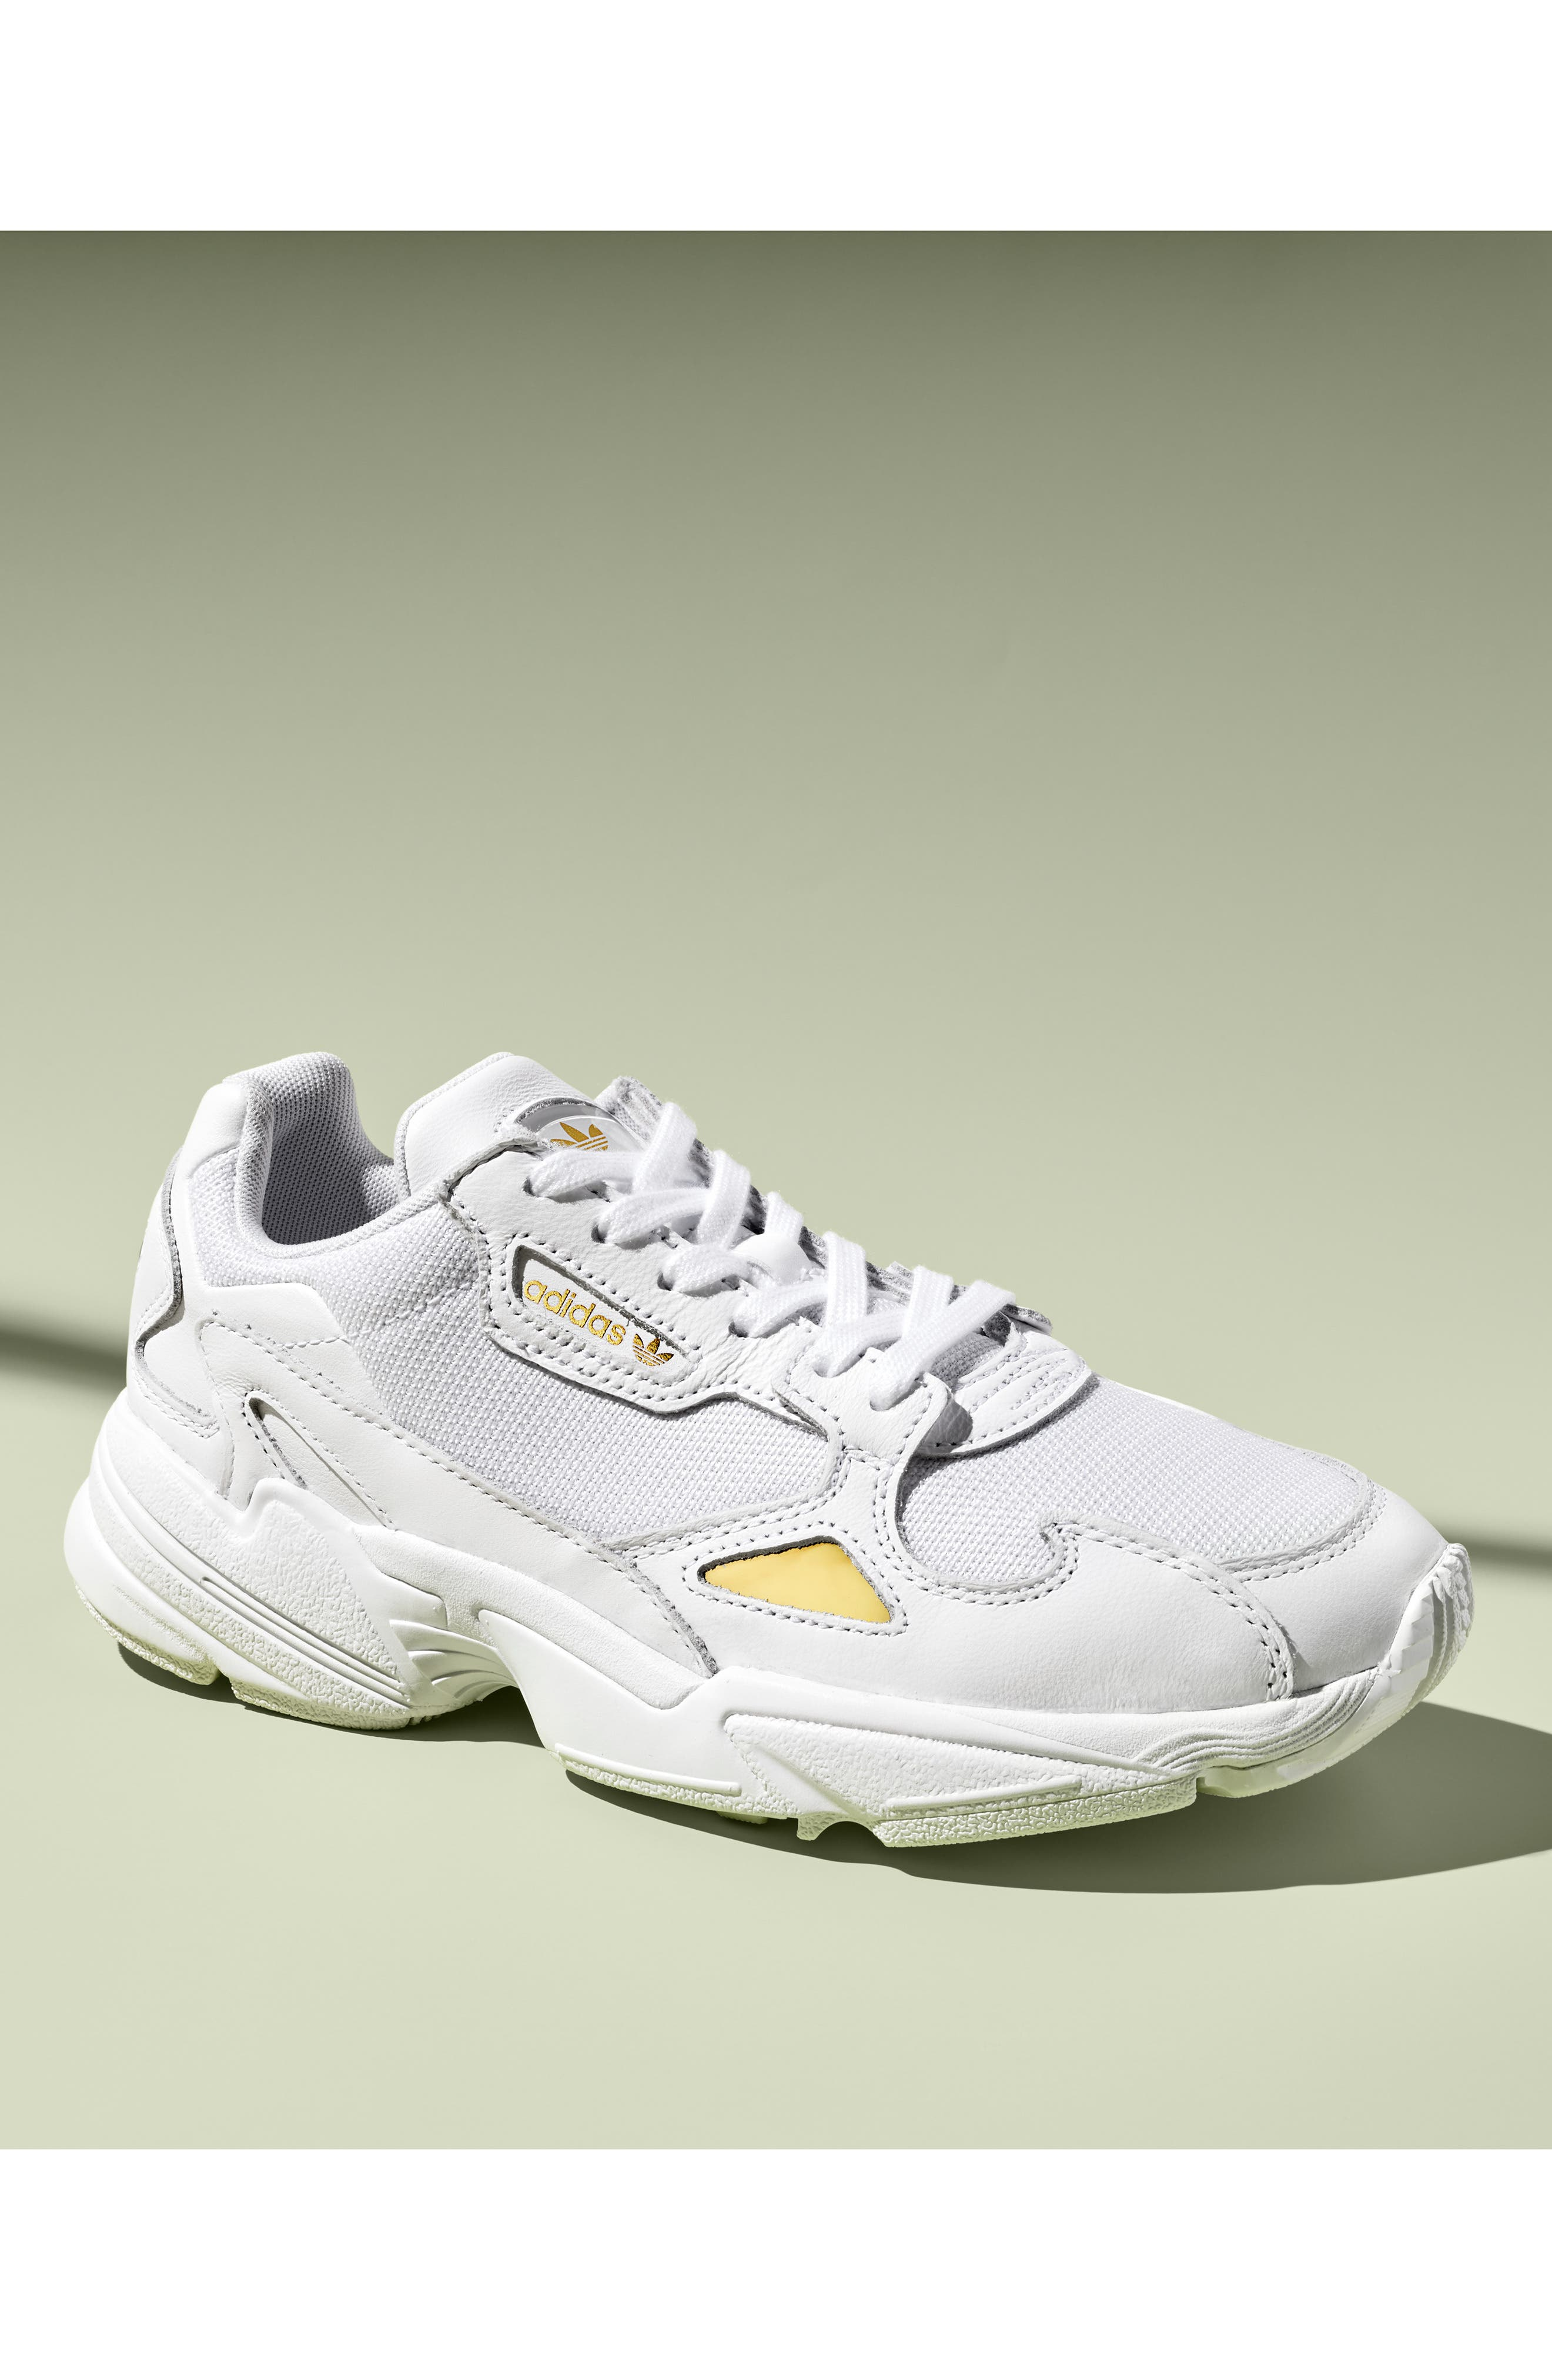 ADIDAS, Falcon Sneaker, Alternate thumbnail 7, color, HI-RES YELLOW/ CORE BLACK